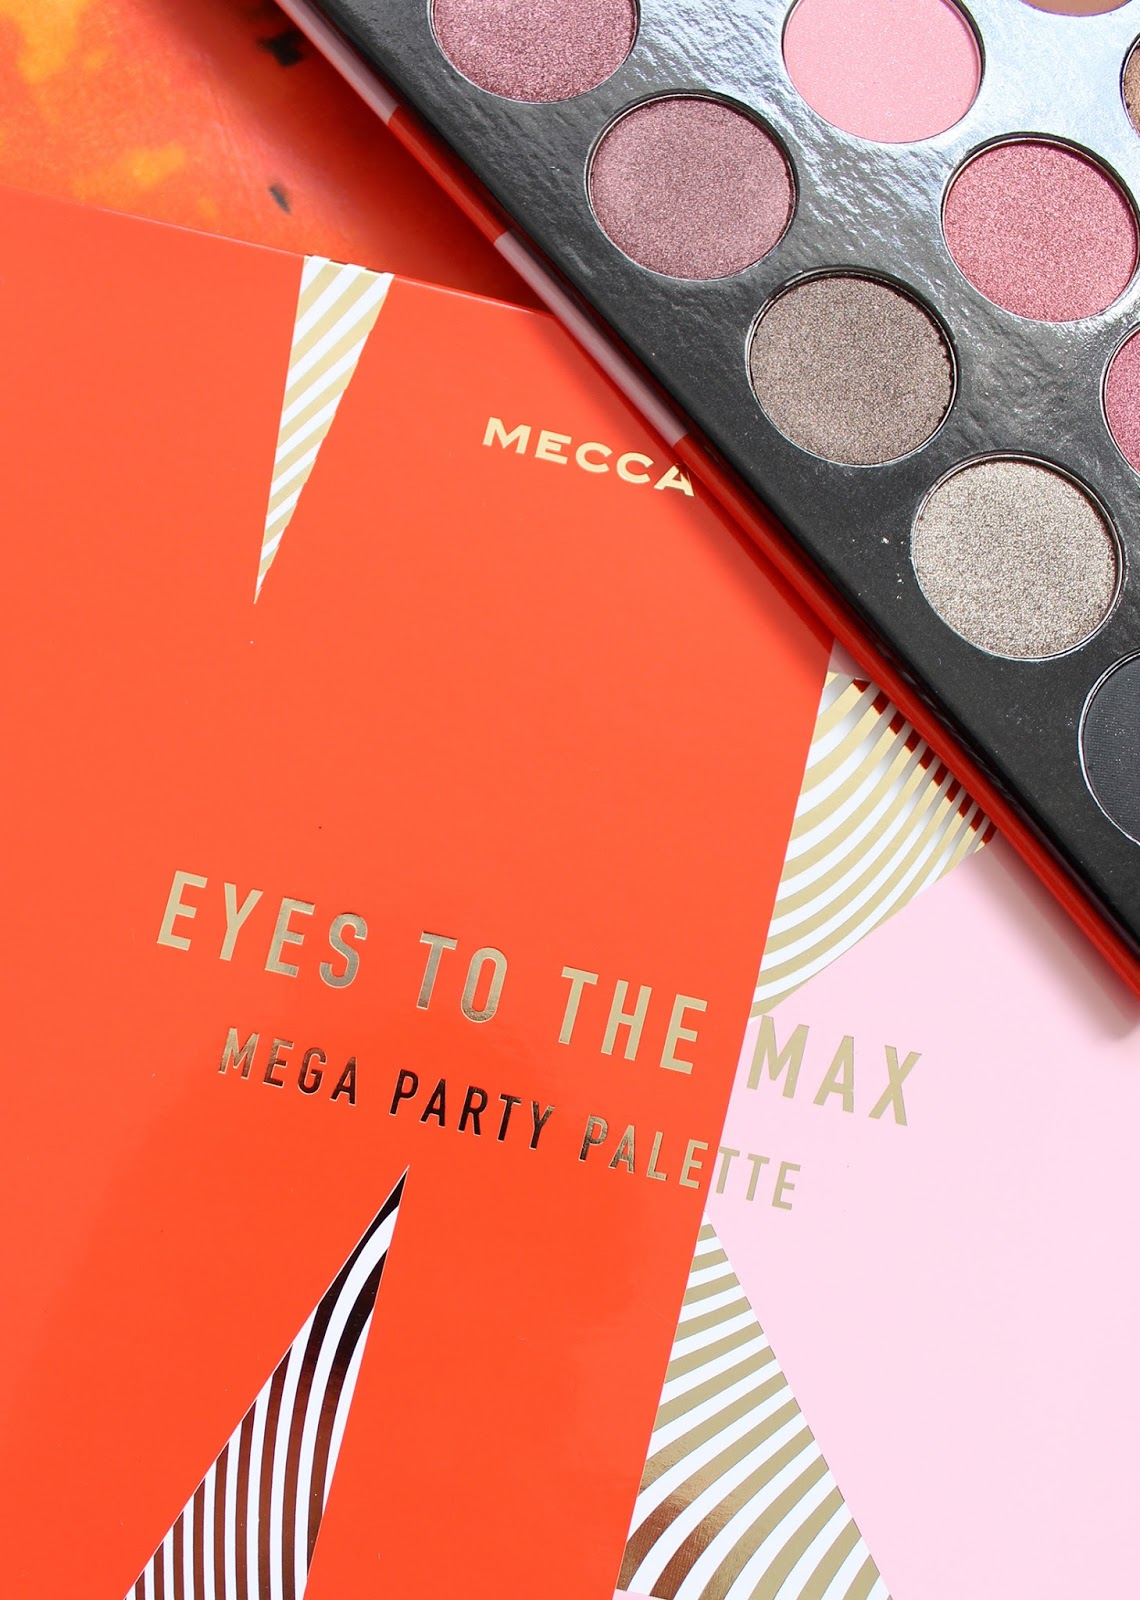 MECCA MAX | Eyes To The Max Mega Party Palette - Review + Swatches - CassandraMyee